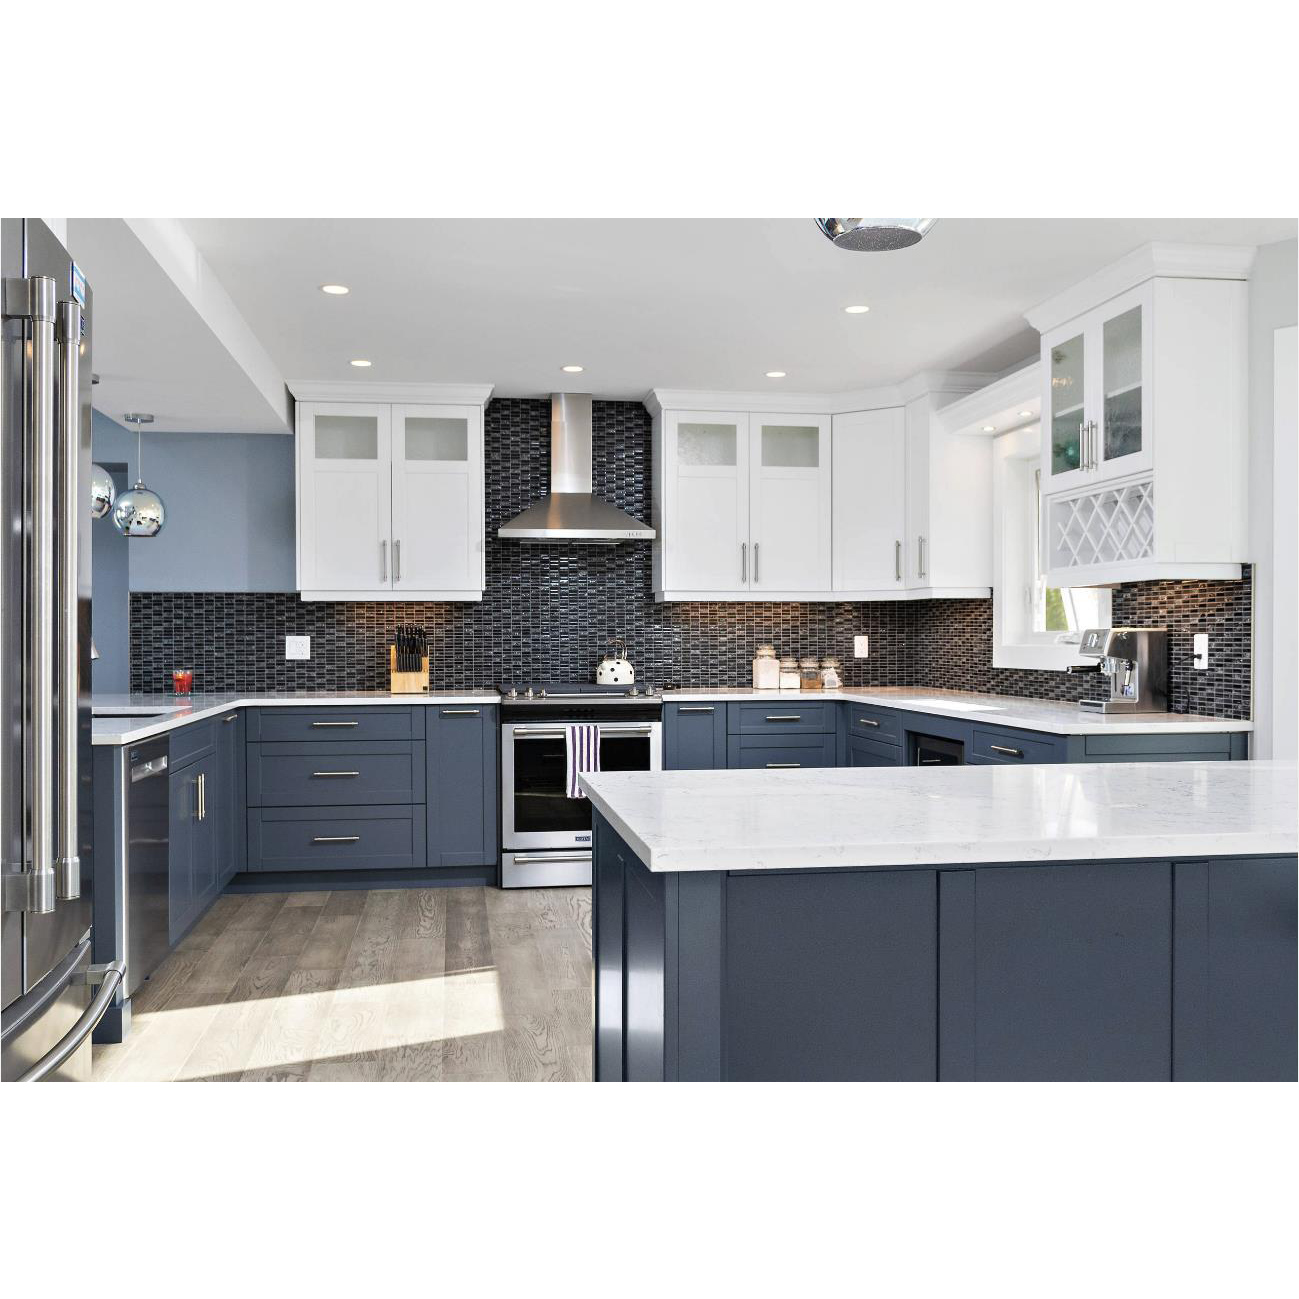 AisDecor new gray cabinets kitchen one-stop services-1